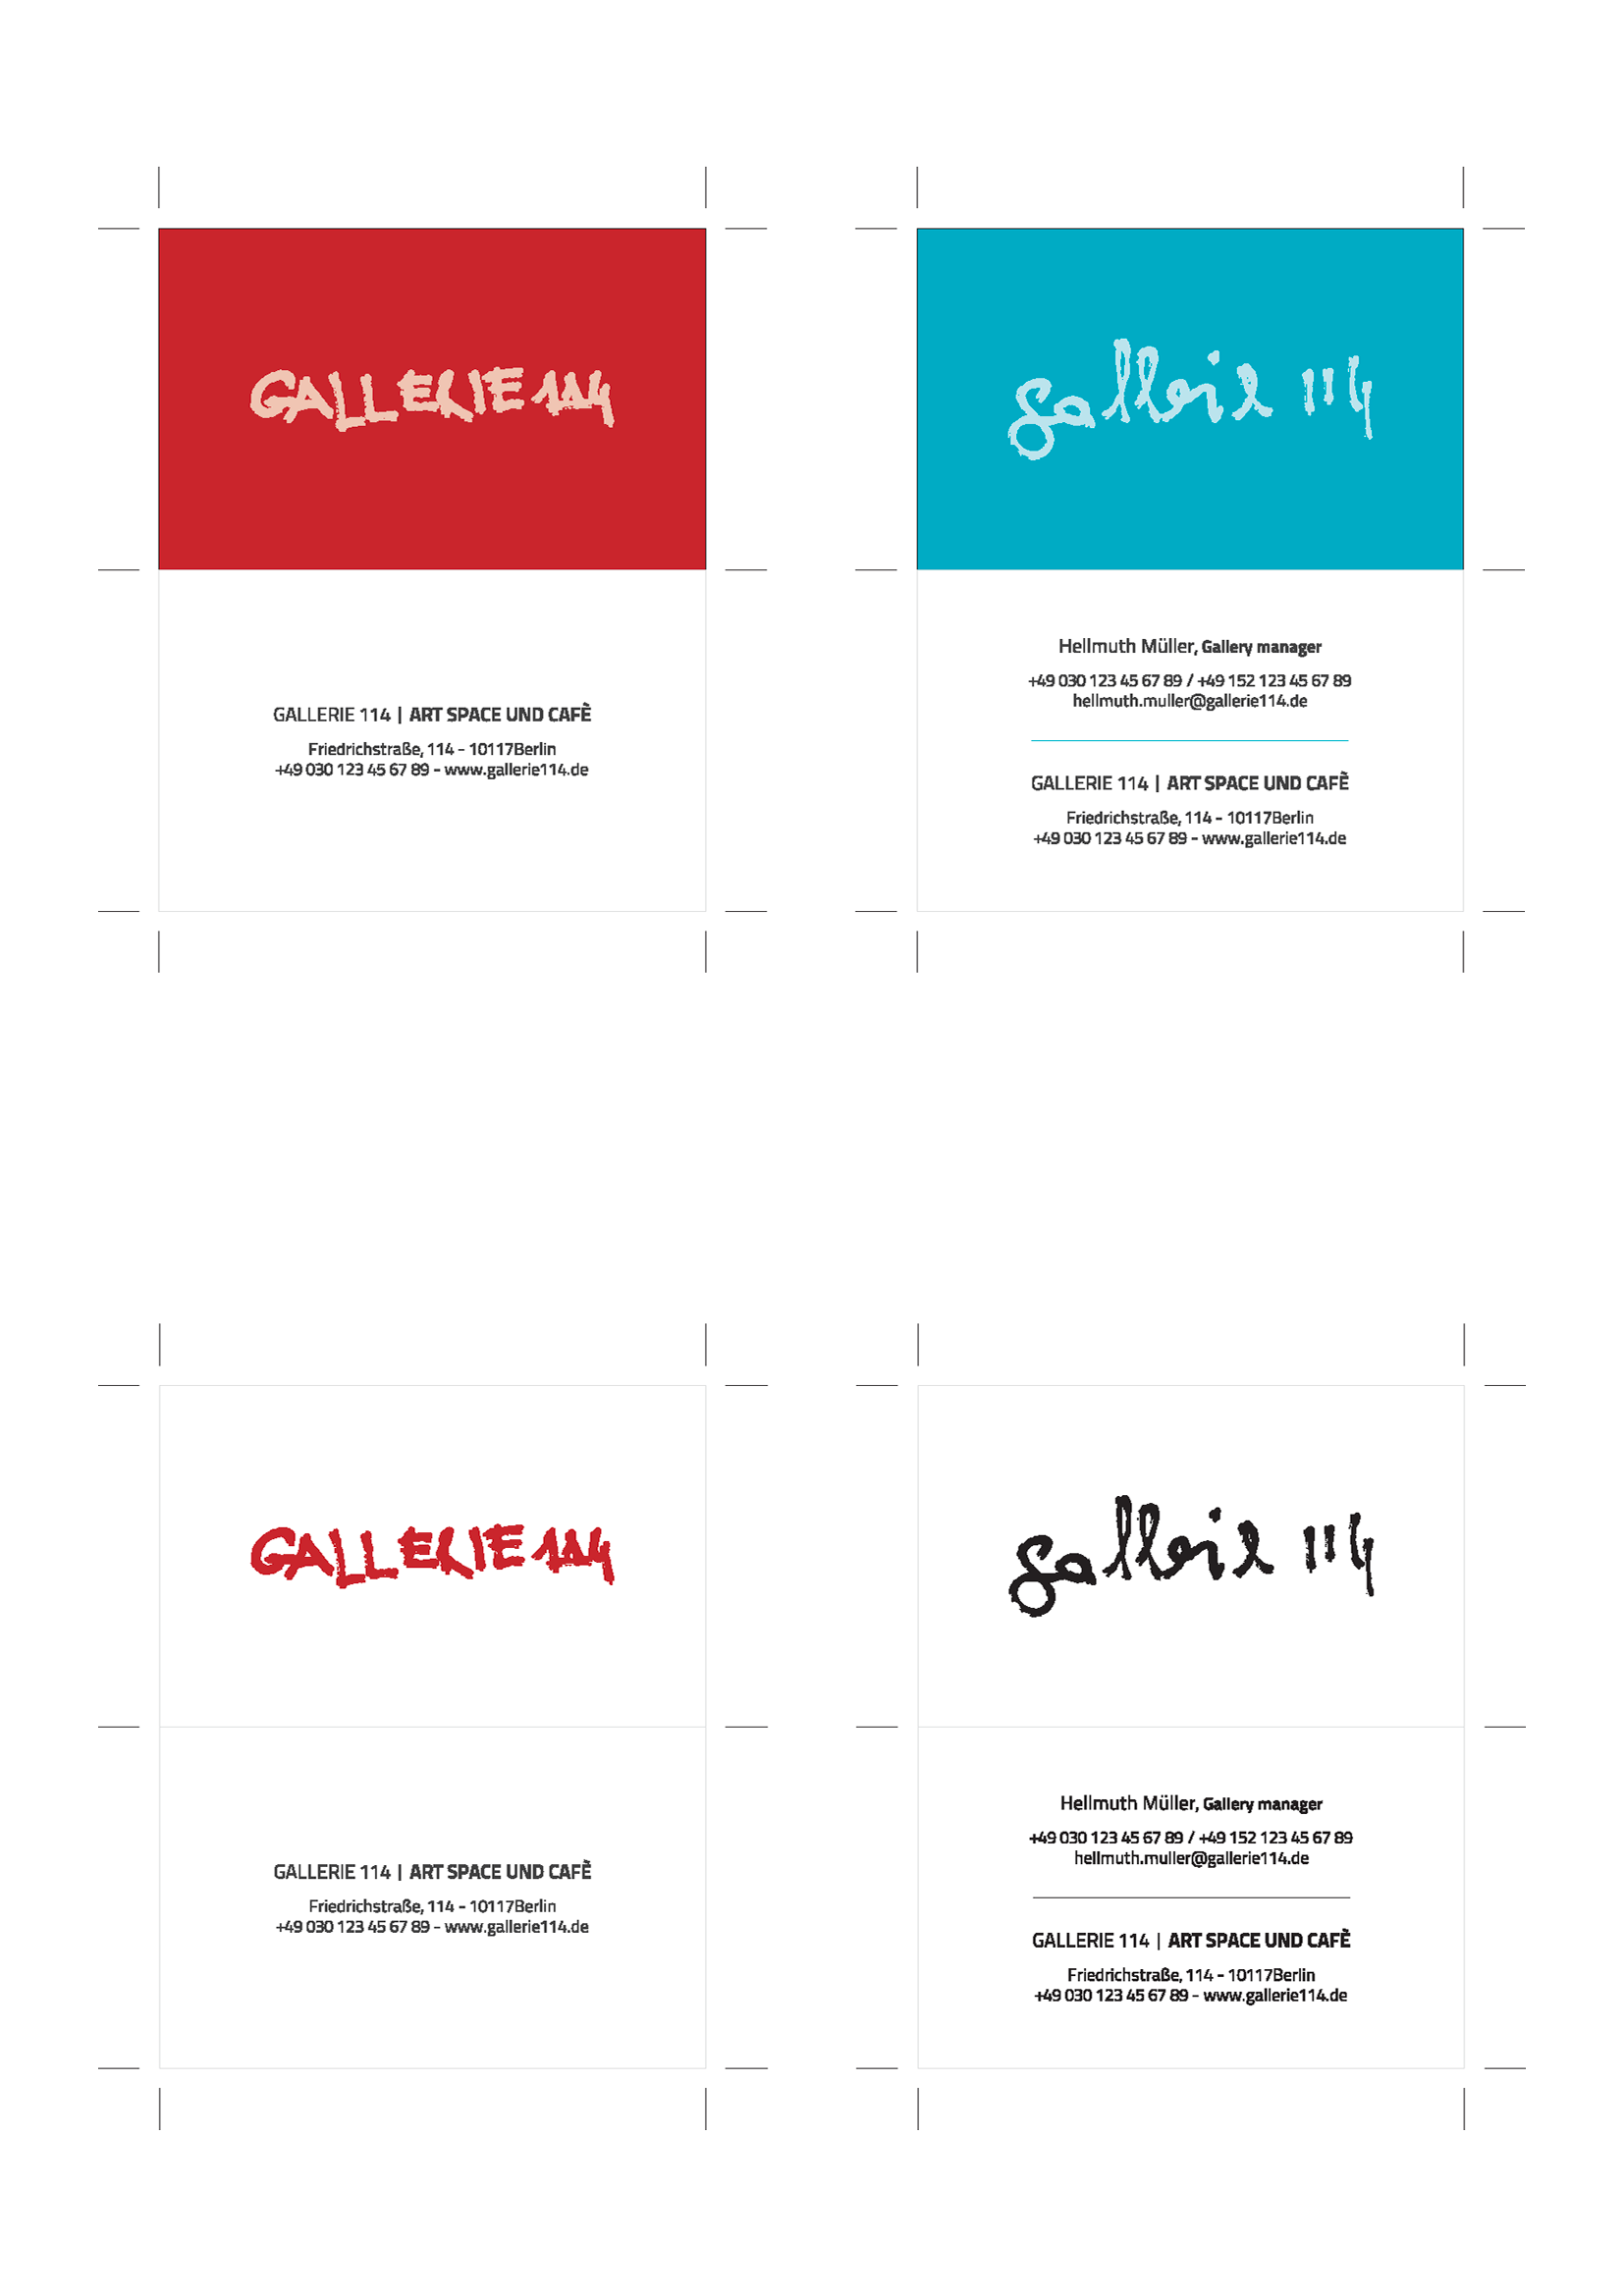 Gallerie 114. Business card mockup